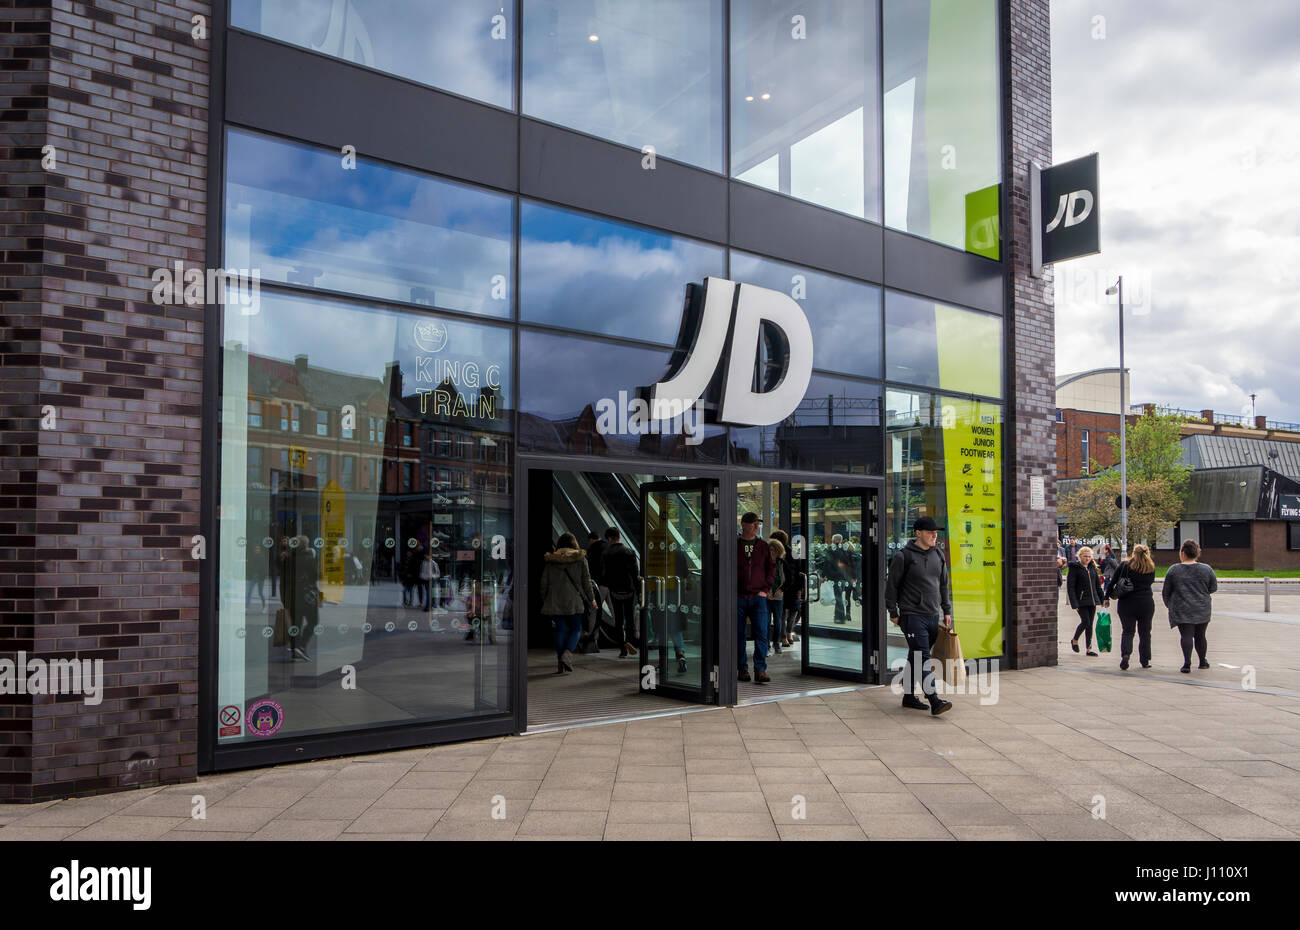 fa47a63d63254 JD Sports Shop Front in Bury, Lancashire Stock Photo: 138320281 - Alamy